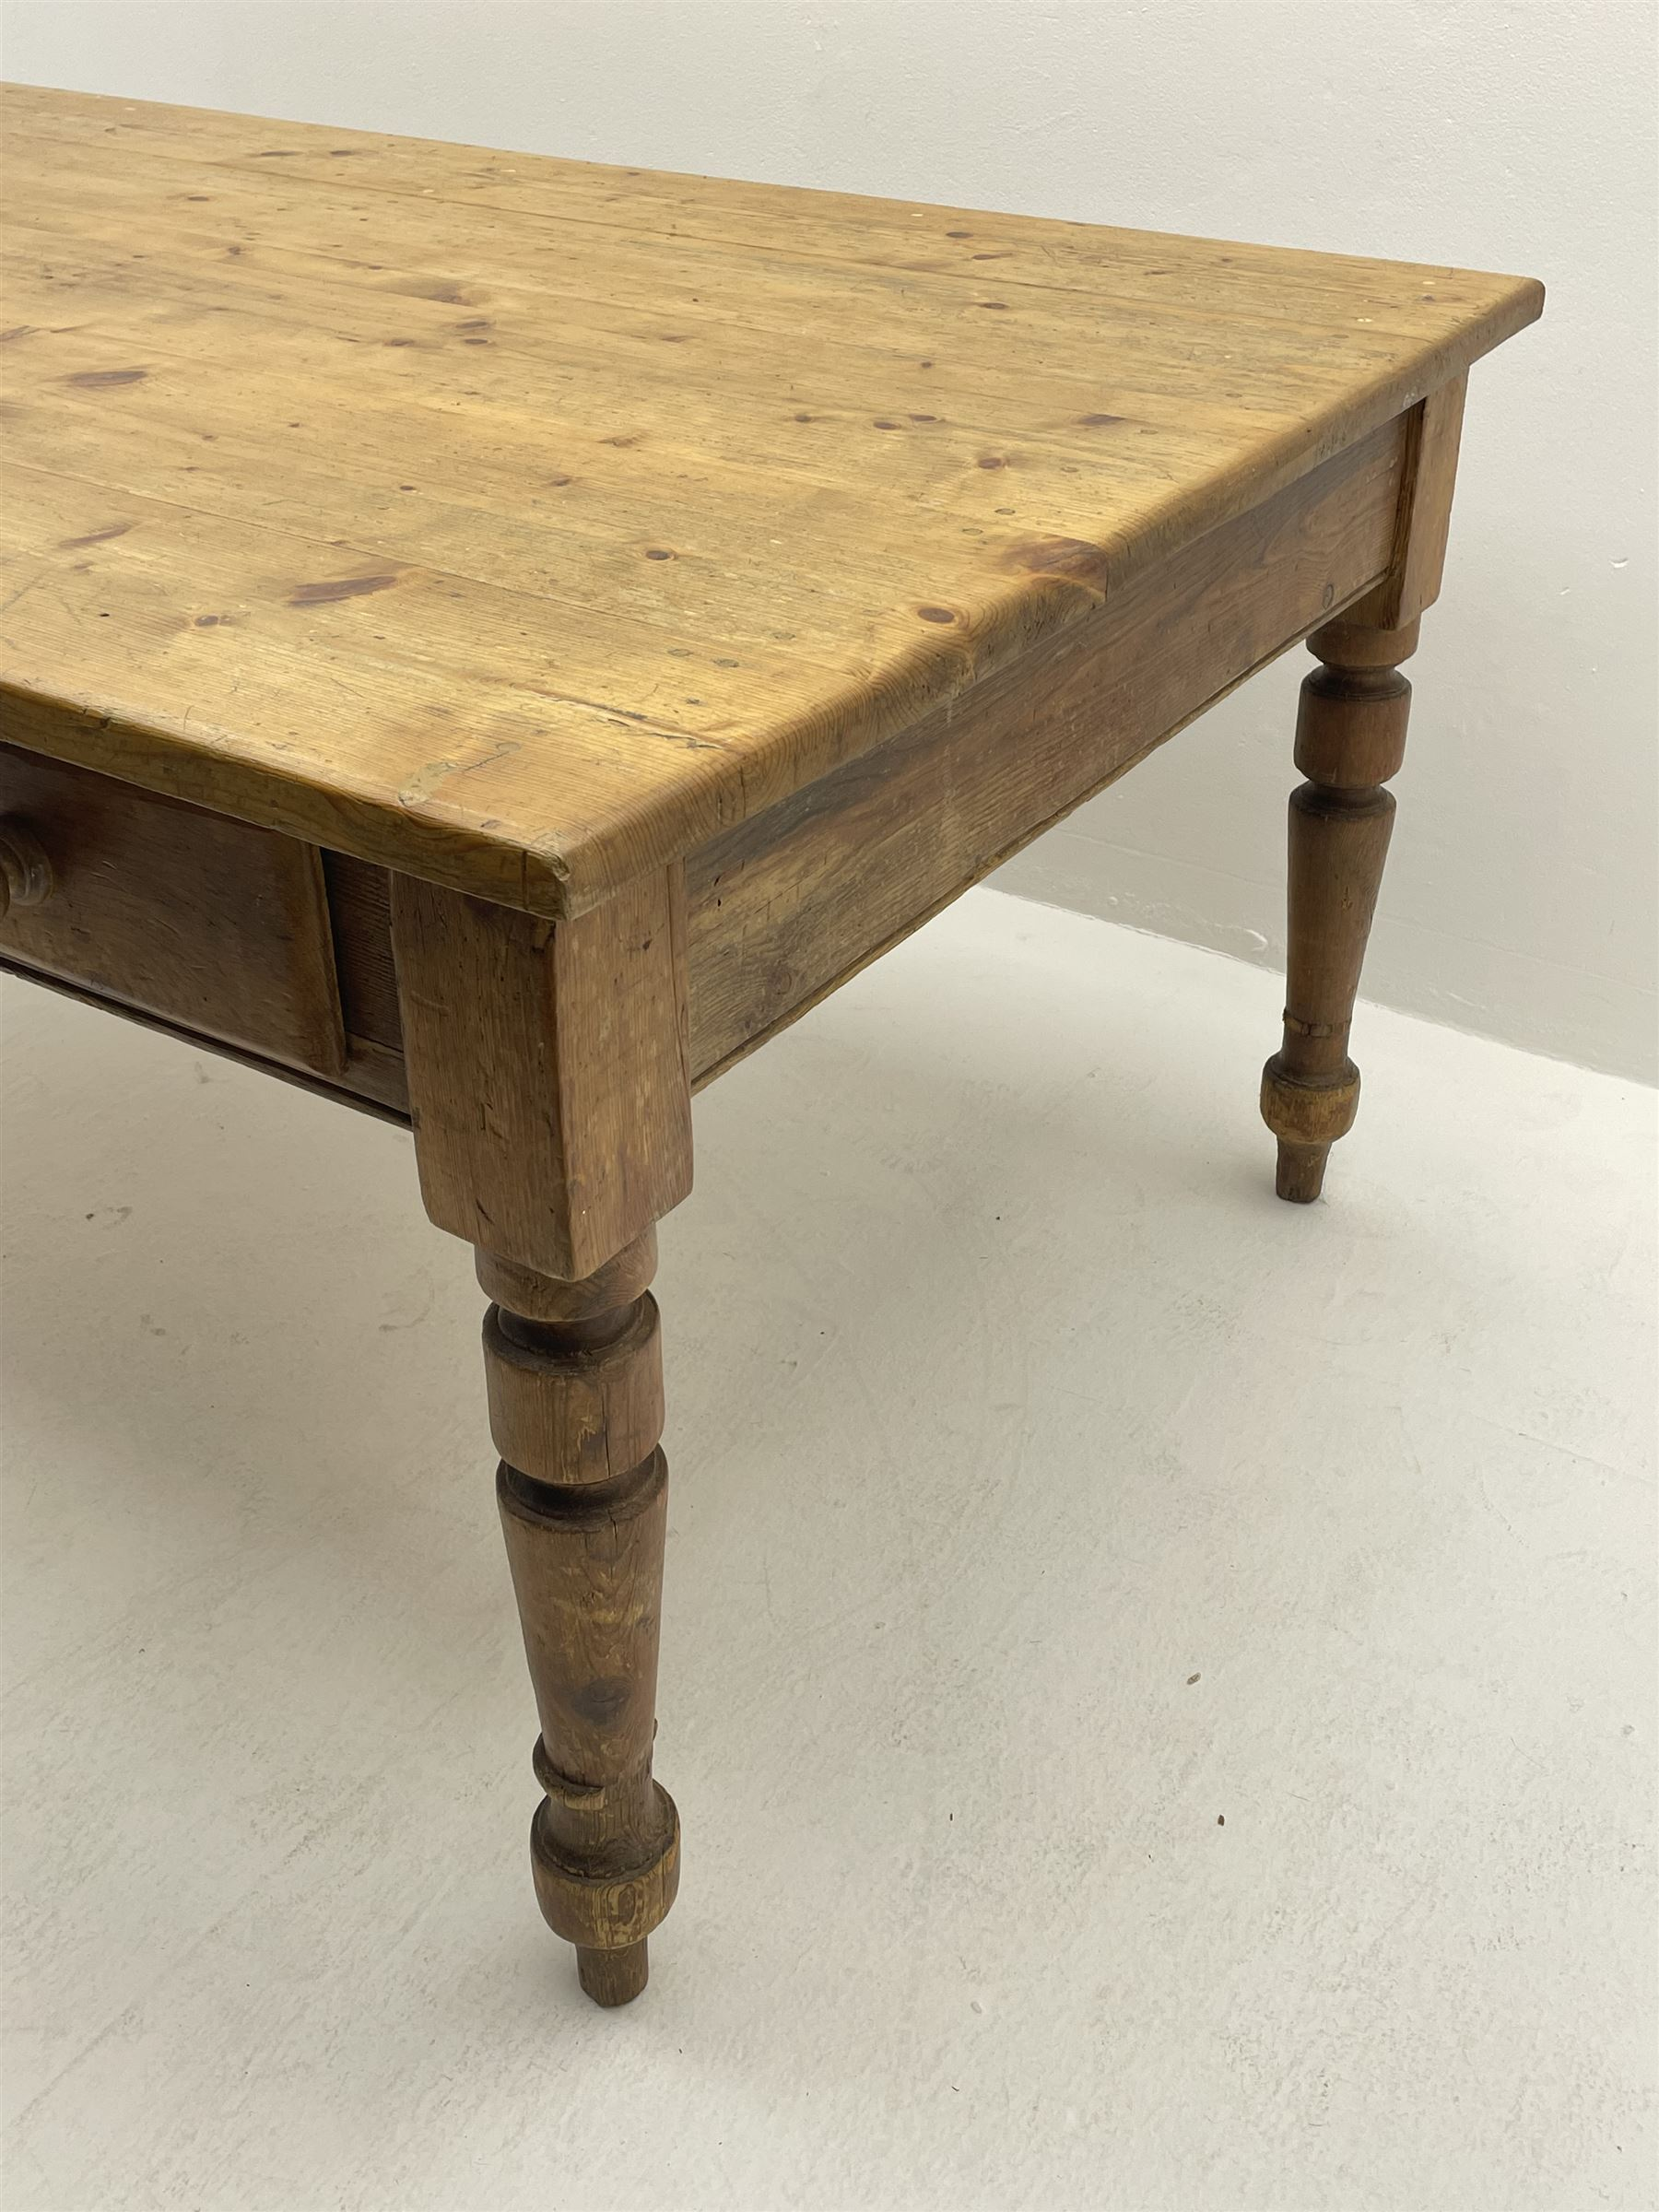 19th century and later pine farmhouse style kitchen dining table - Image 3 of 4